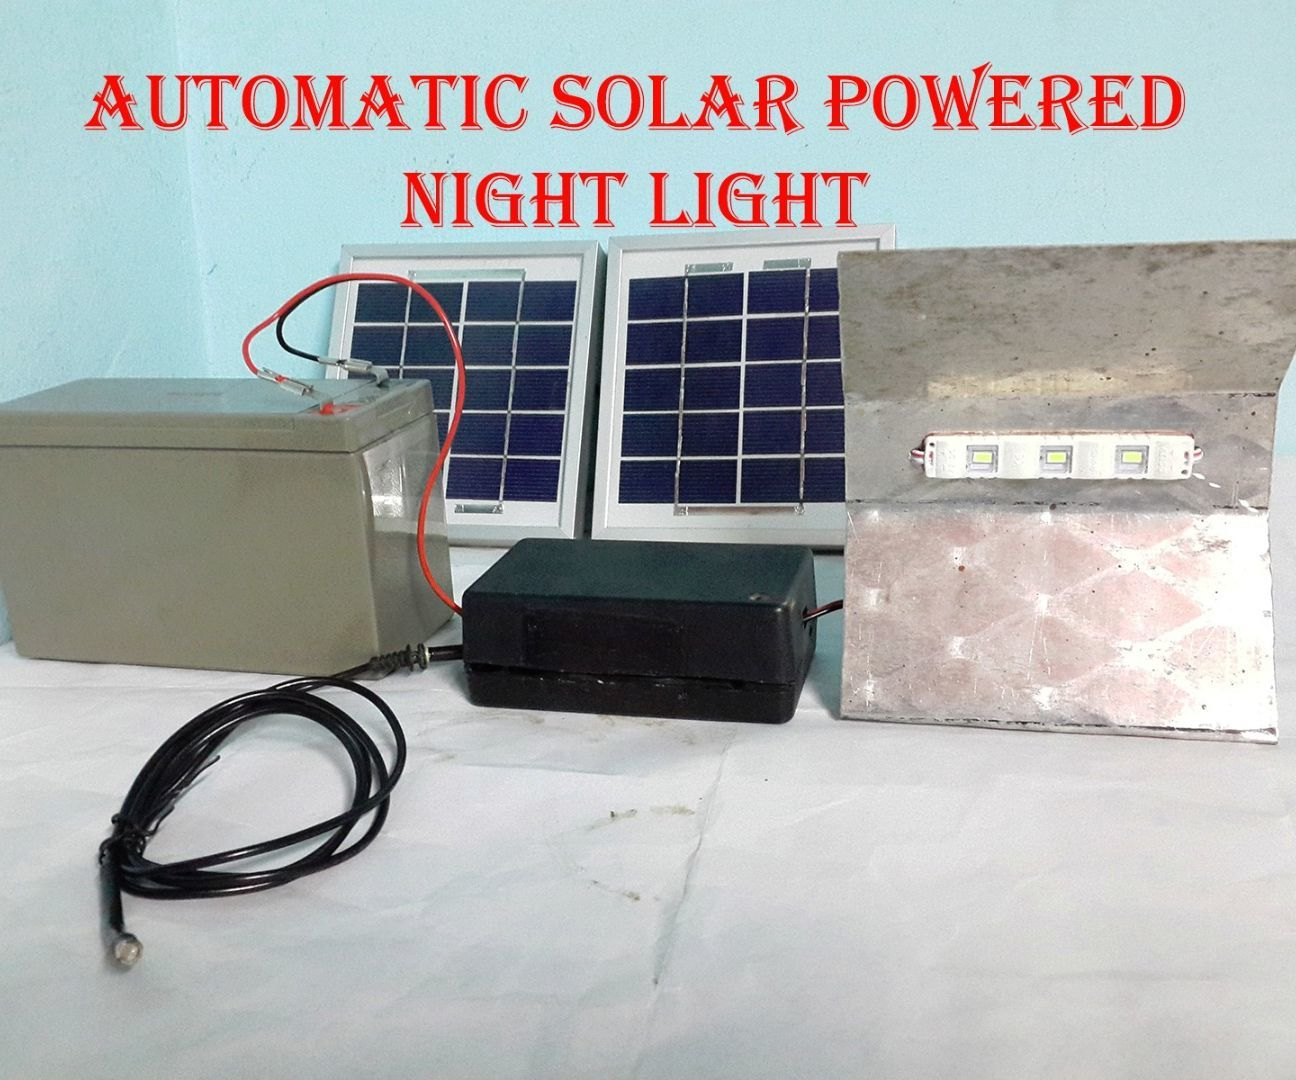 AUTOMATIC SOLAR POWERED NIGHT LIGHT